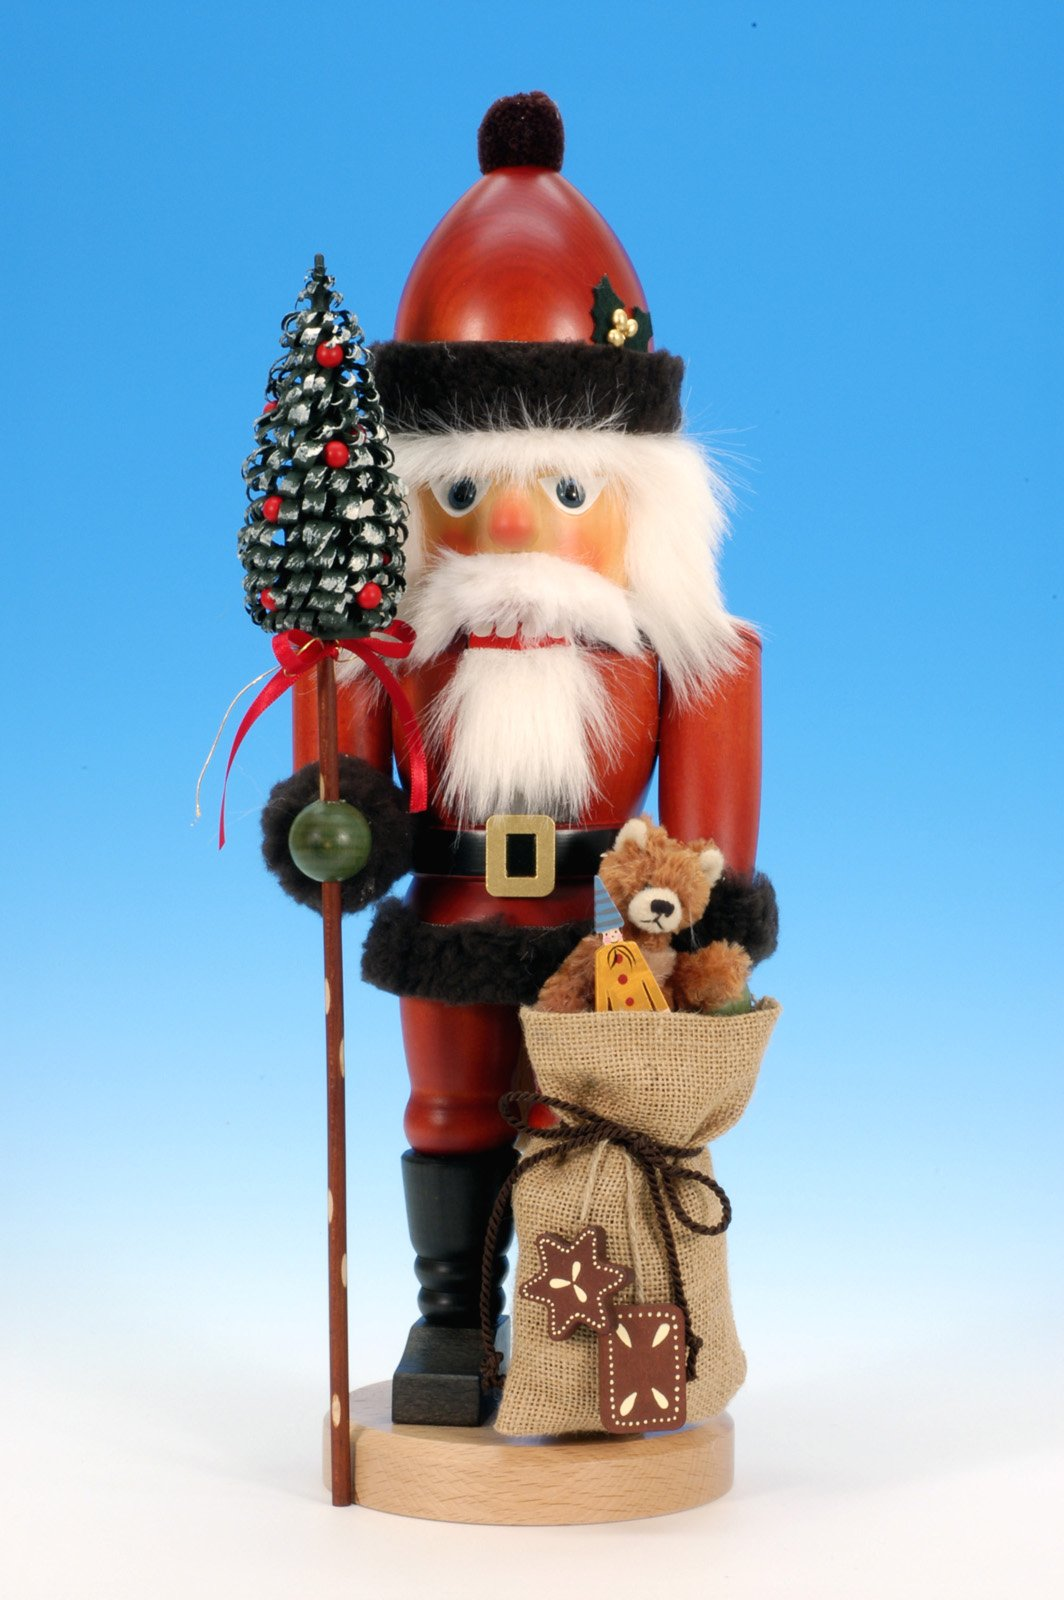 German Christmas Nutcracker Santa Claus with Teddy - 44,5 cm / 18 inch - Authentic German Erzgebirge Nutcrackers - Christian Ulbricht by Christian Ulbricht